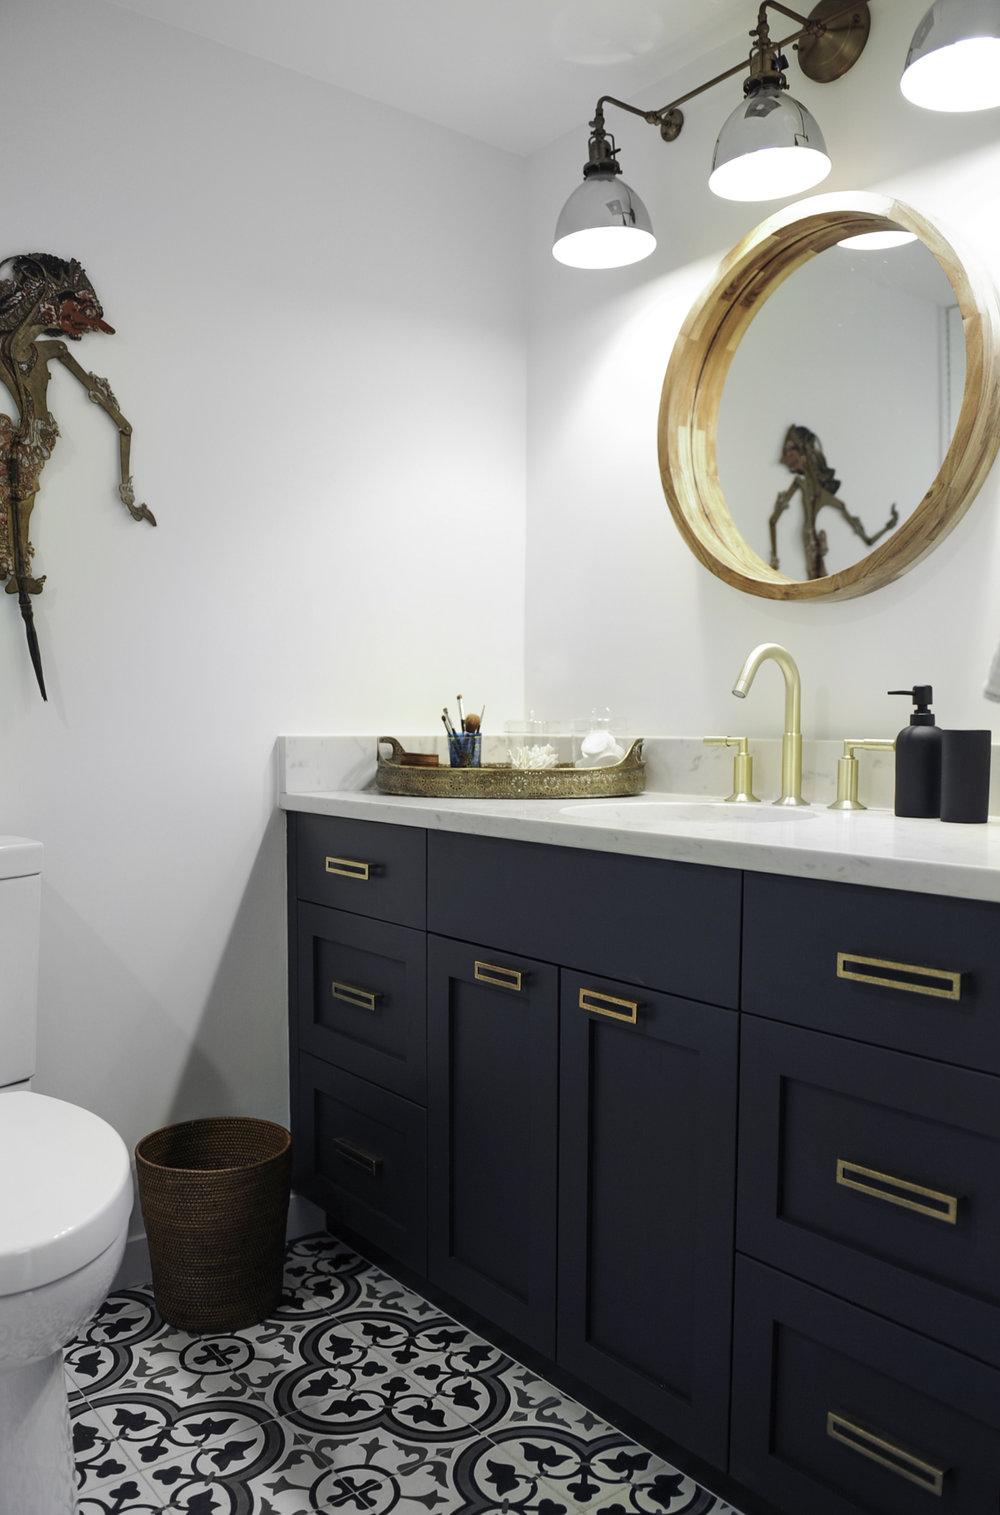 A bathroom featuring a wooden vanity mirror, gold fixtures on the sink and black bathroom cabinets with gold drawer handles.